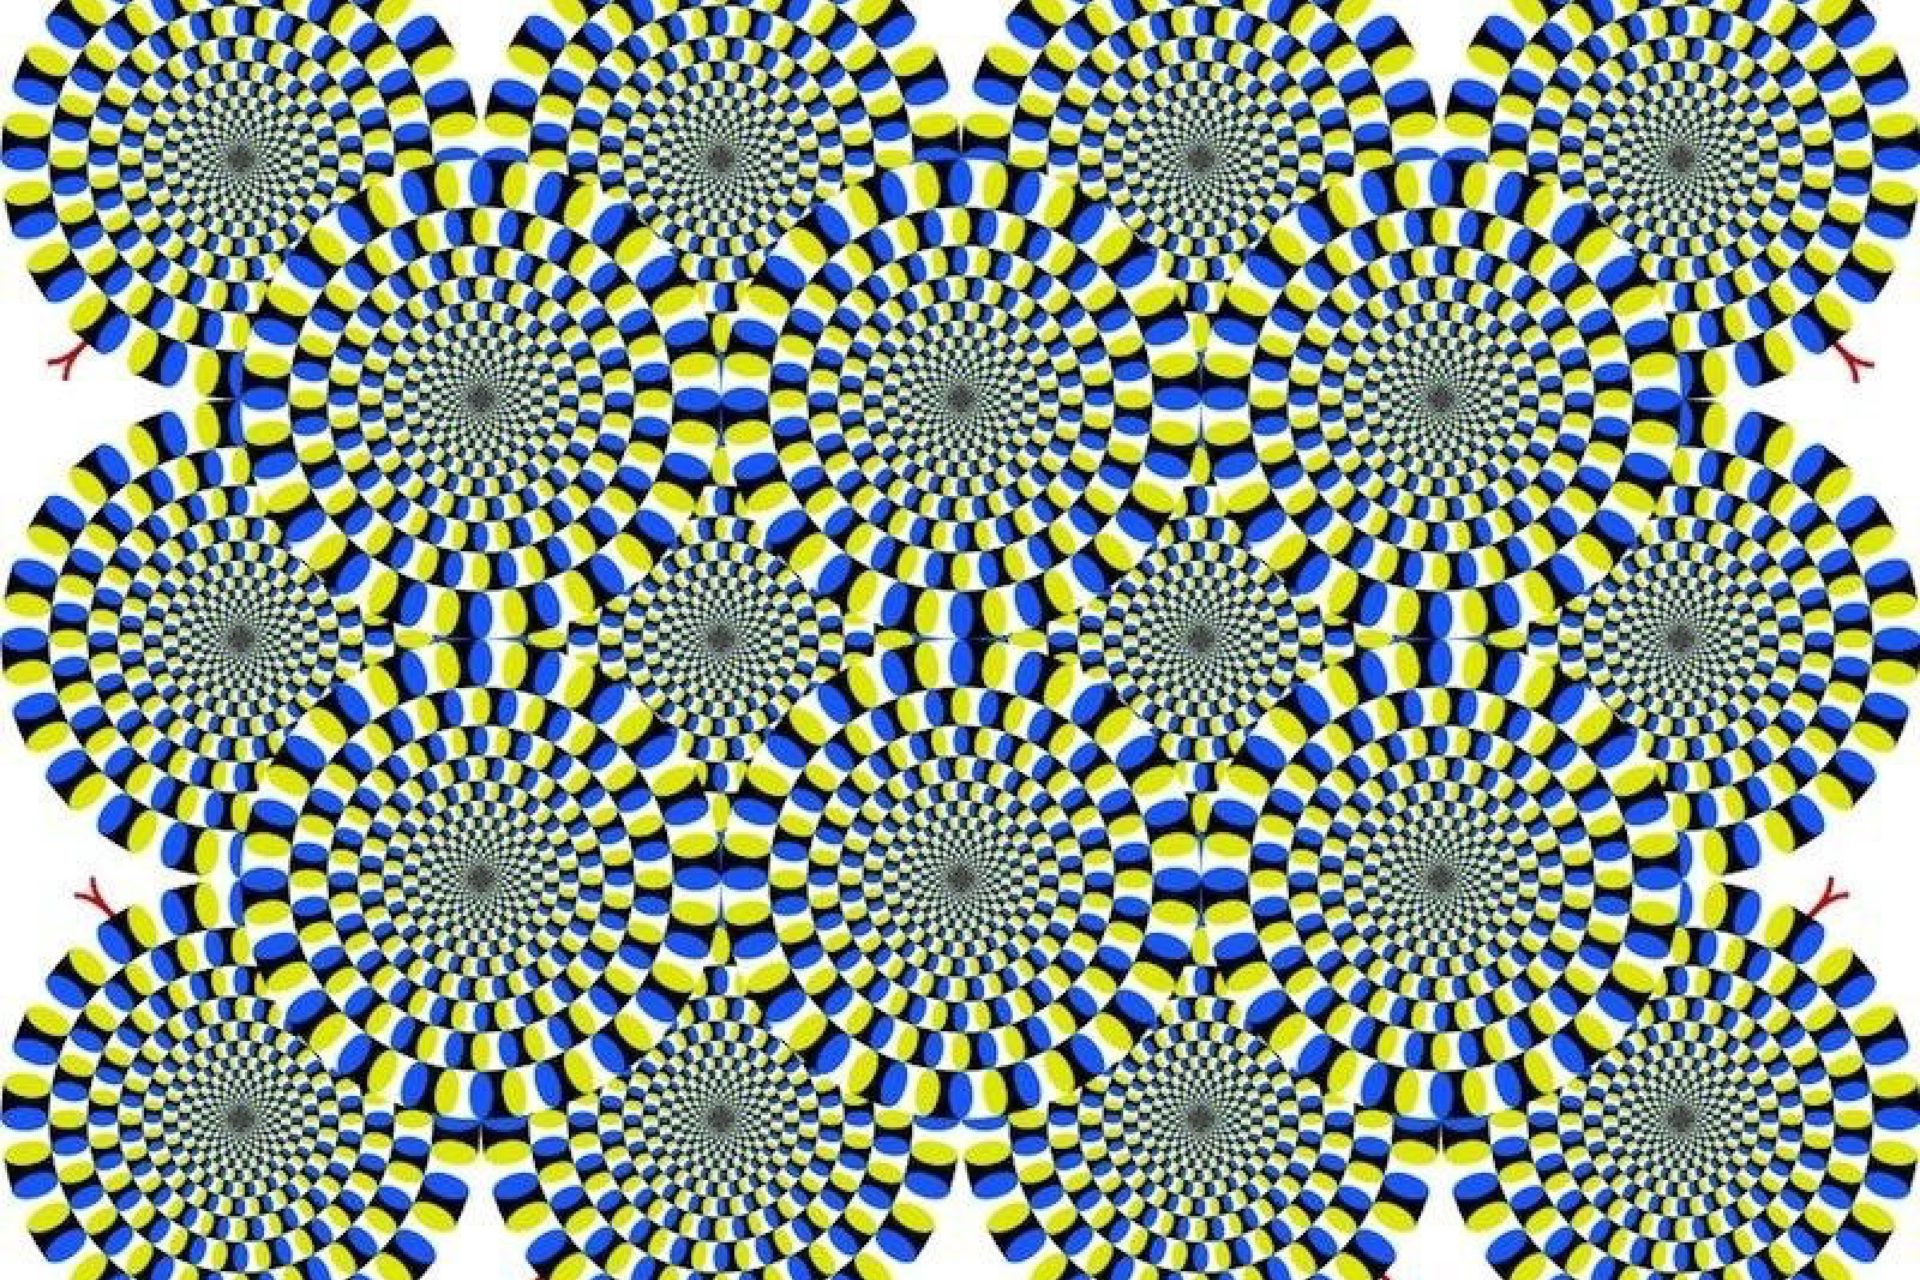 Science of Optical Illusions